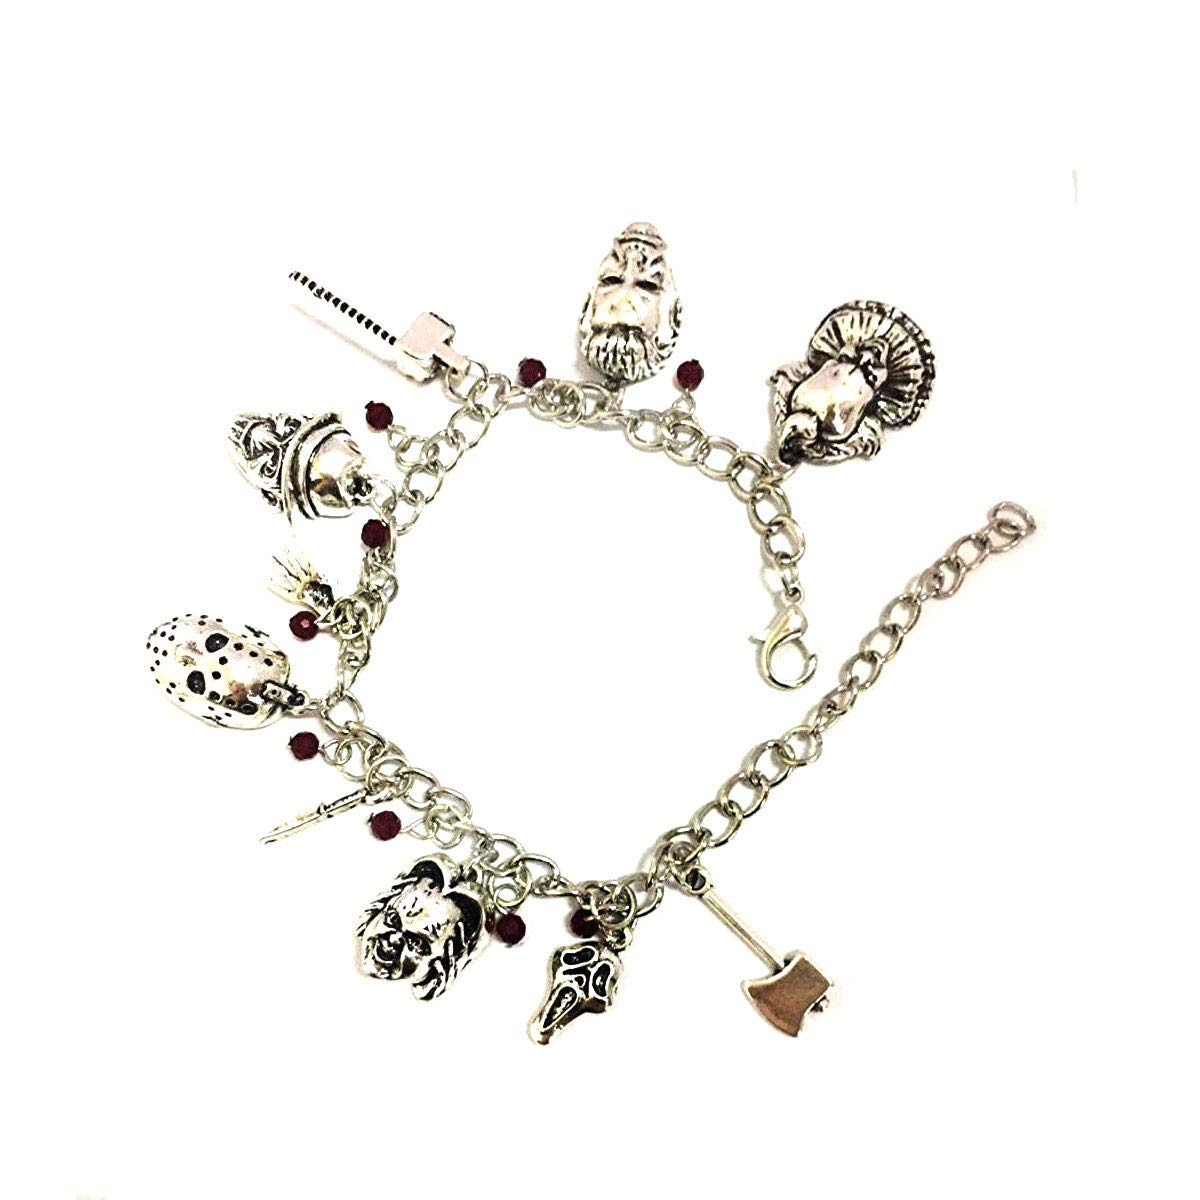 Blingsoul Chucky Charm Child Bracelet - Horror Jewelry Movie Merchandise Gifts Collection for Women